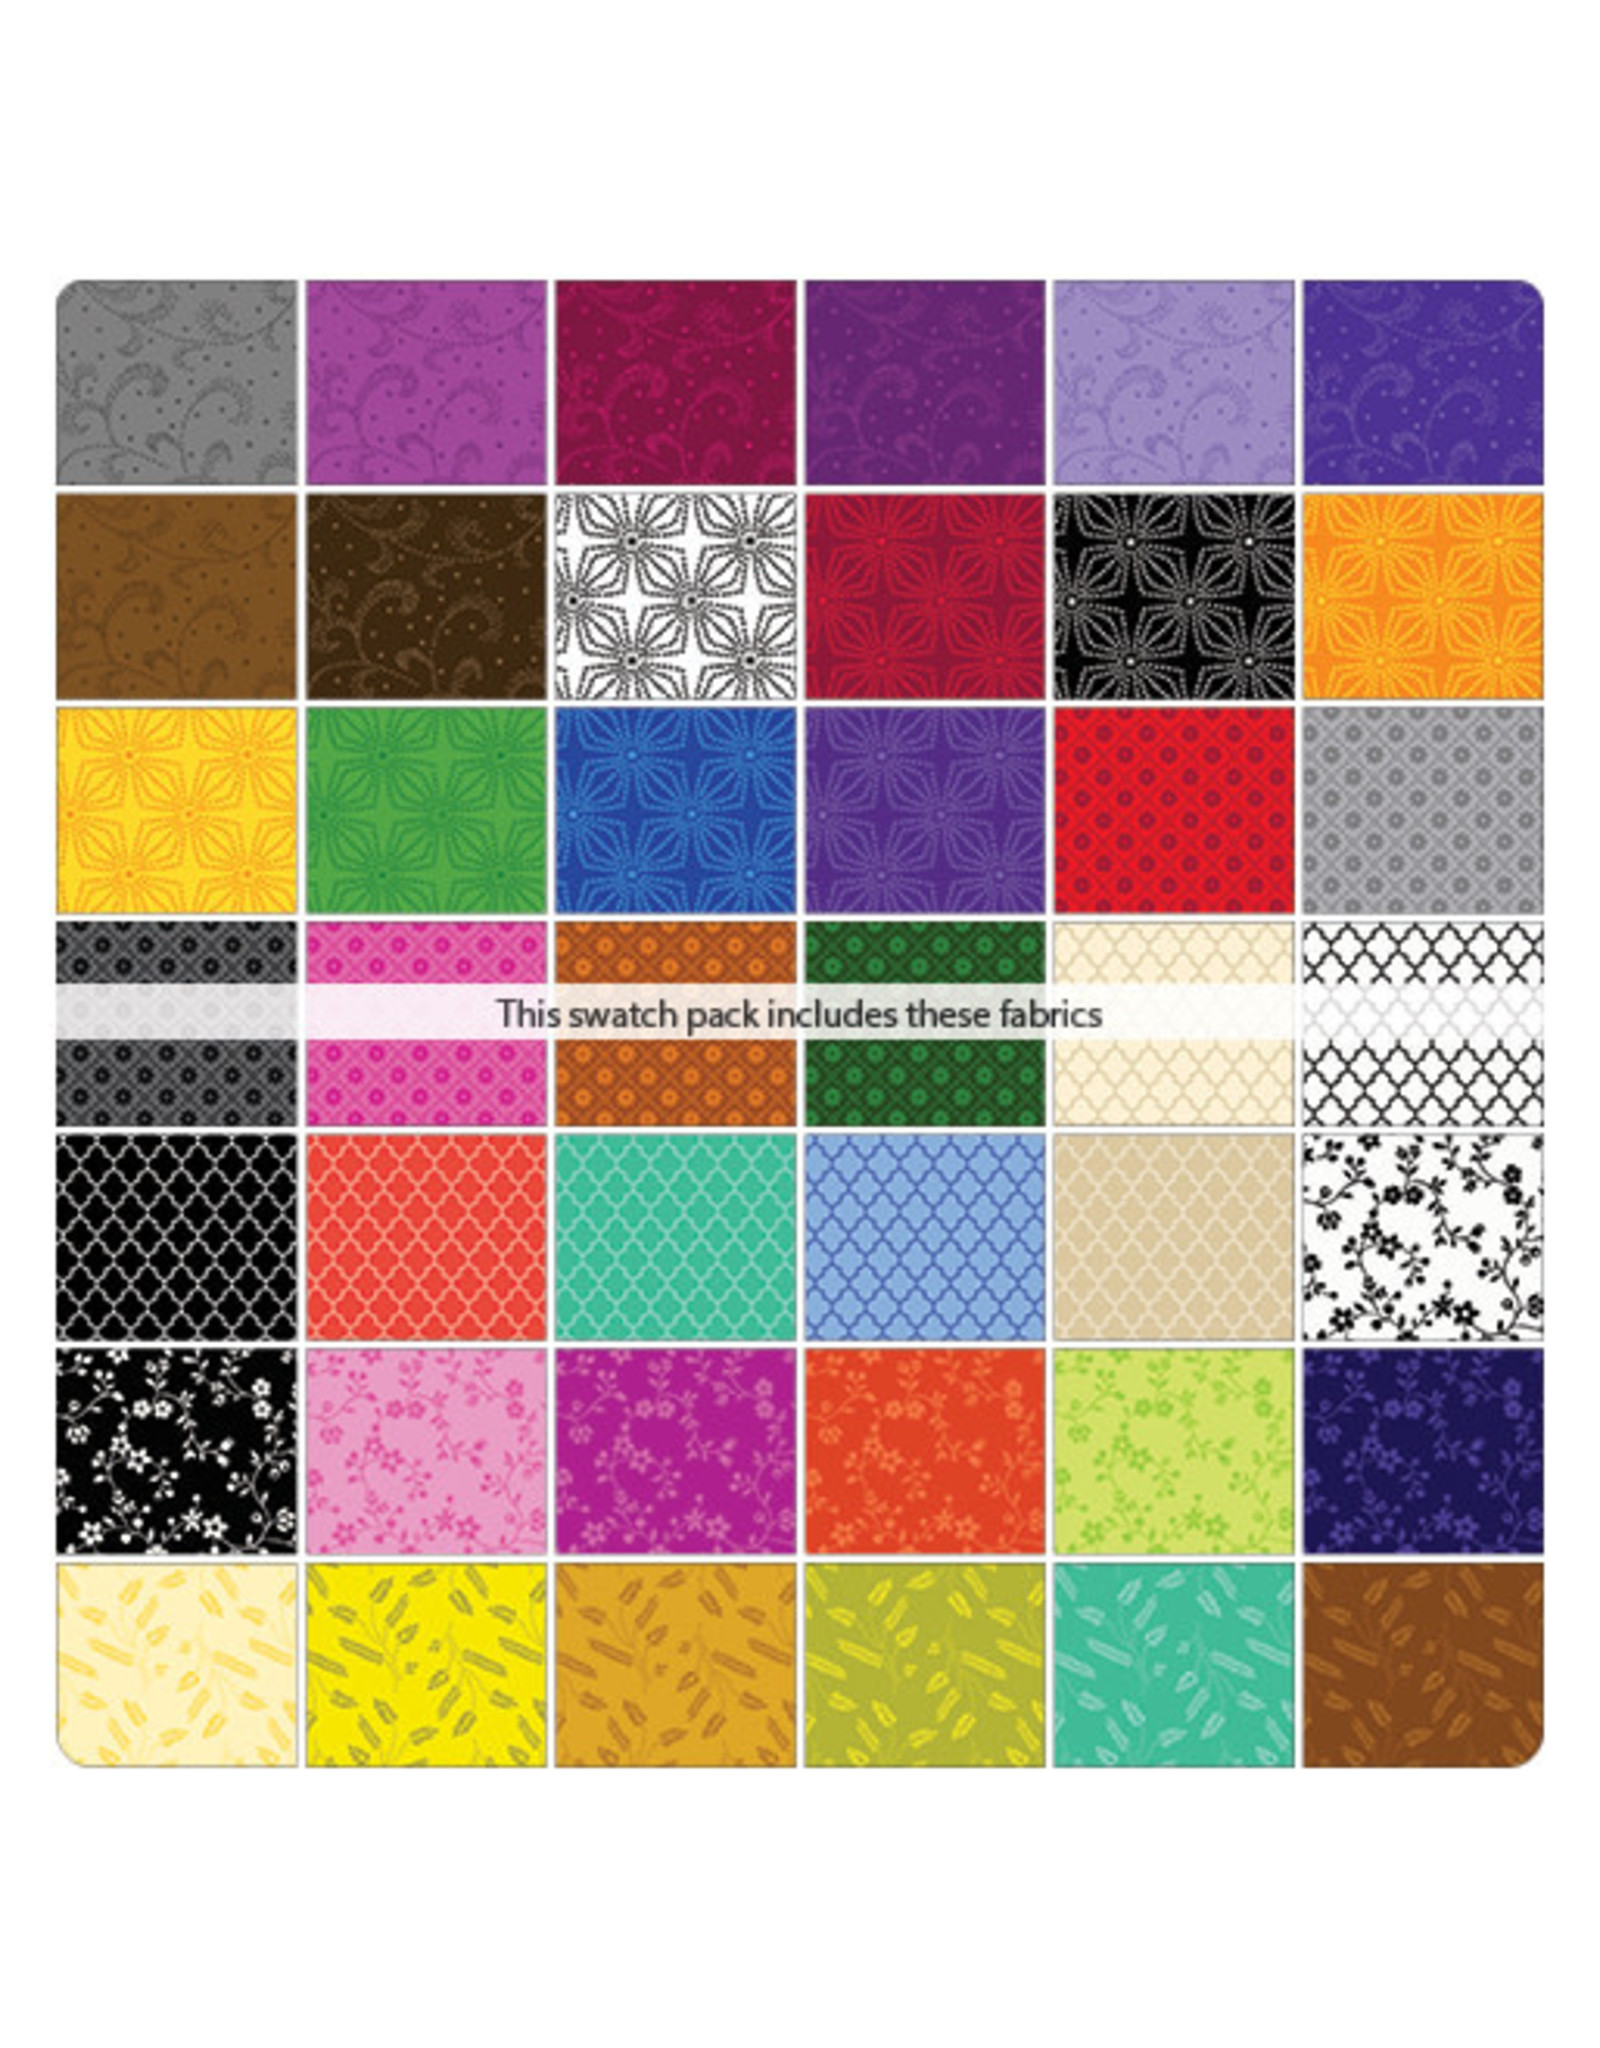 Kanvas Studio Color Theory - 5x5 Pack